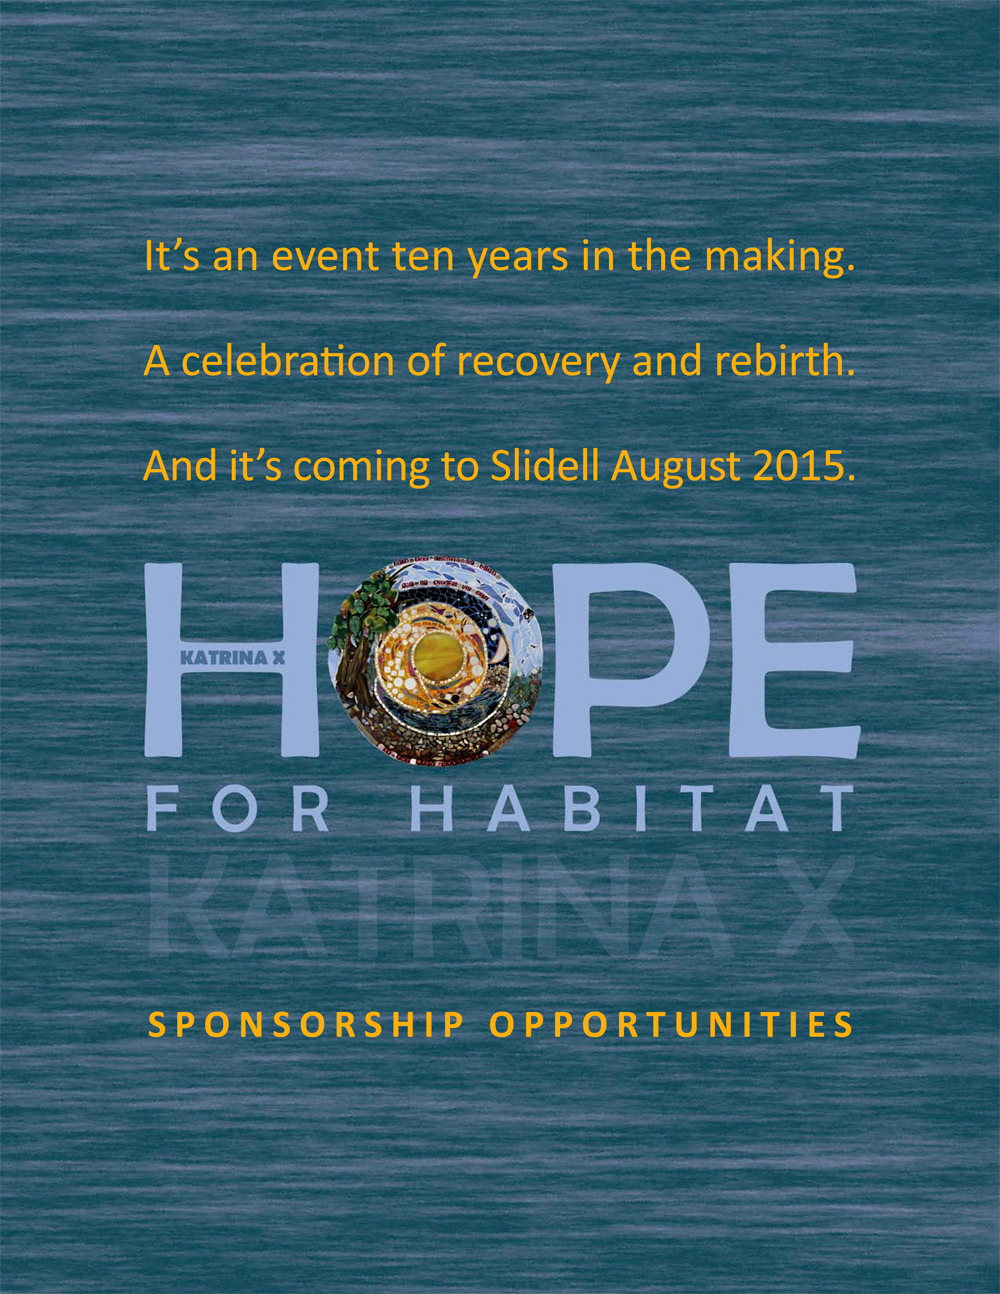 Thanks to our Hope for Habitat: Katrina X event sponsors